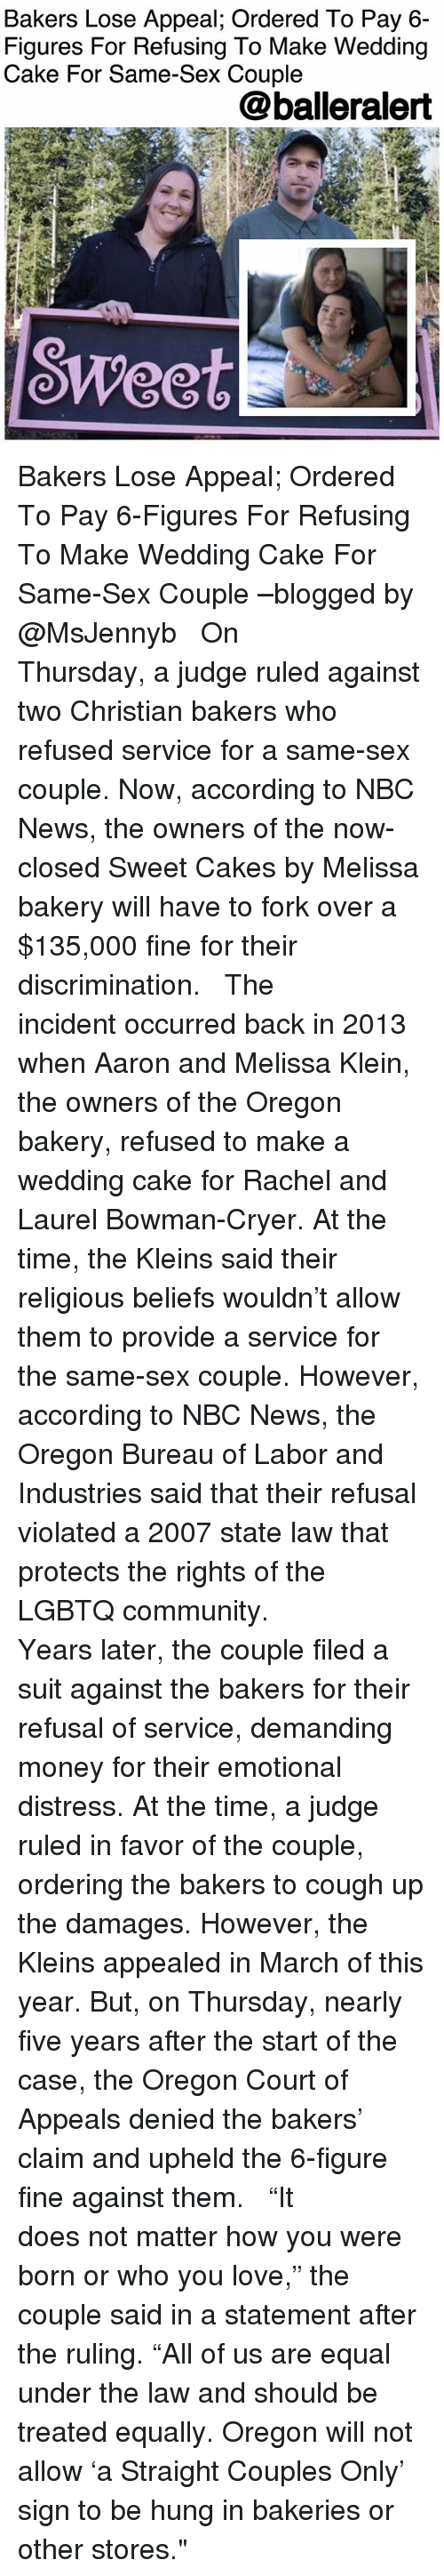 """upheld: Bakers Lose Appeal; Ordered To Pay 6-  Figures For Refusing To Make Wedding  Cake For Same-Sex Couple  @balleralert  SWeet Bakers Lose Appeal; Ordered To Pay 6-Figures For Refusing To Make Wedding Cake For Same-Sex Couple –blogged by @MsJennyb ⠀⠀⠀⠀⠀⠀⠀ ⠀⠀⠀⠀⠀⠀⠀ On Thursday, a judge ruled against two Christian bakers who refused service for a same-sex couple. Now, according to NBC News, the owners of the now-closed Sweet Cakes by Melissa bakery will have to fork over a $135,000 fine for their discrimination. ⠀⠀⠀⠀⠀⠀⠀ ⠀⠀⠀⠀⠀⠀⠀ The incident occurred back in 2013 when Aaron and Melissa Klein, the owners of the Oregon bakery, refused to make a wedding cake for Rachel and Laurel Bowman-Cryer. At the time, the Kleins said their religious beliefs wouldn't allow them to provide a service for the same-sex couple. However, according to NBC News, the Oregon Bureau of Labor and Industries said that their refusal violated a 2007 state law that protects the rights of the LGBTQ community. ⠀⠀⠀⠀⠀⠀⠀ ⠀⠀⠀⠀⠀⠀⠀ Years later, the couple filed a suit against the bakers for their refusal of service, demanding money for their emotional distress. At the time, a judge ruled in favor of the couple, ordering the bakers to cough up the damages. However, the Kleins appealed in March of this year. But, on Thursday, nearly five years after the start of the case, the Oregon Court of Appeals denied the bakers' claim and upheld the 6-figure fine against them. ⠀⠀⠀⠀⠀⠀⠀ ⠀⠀⠀⠀⠀⠀⠀ """"It does not matter how you were born or who you love,"""" the couple said in a statement after the ruling. """"All of us are equal under the law and should be treated equally. Oregon will not allow 'a Straight Couples Only' sign to be hung in bakeries or other stores."""""""